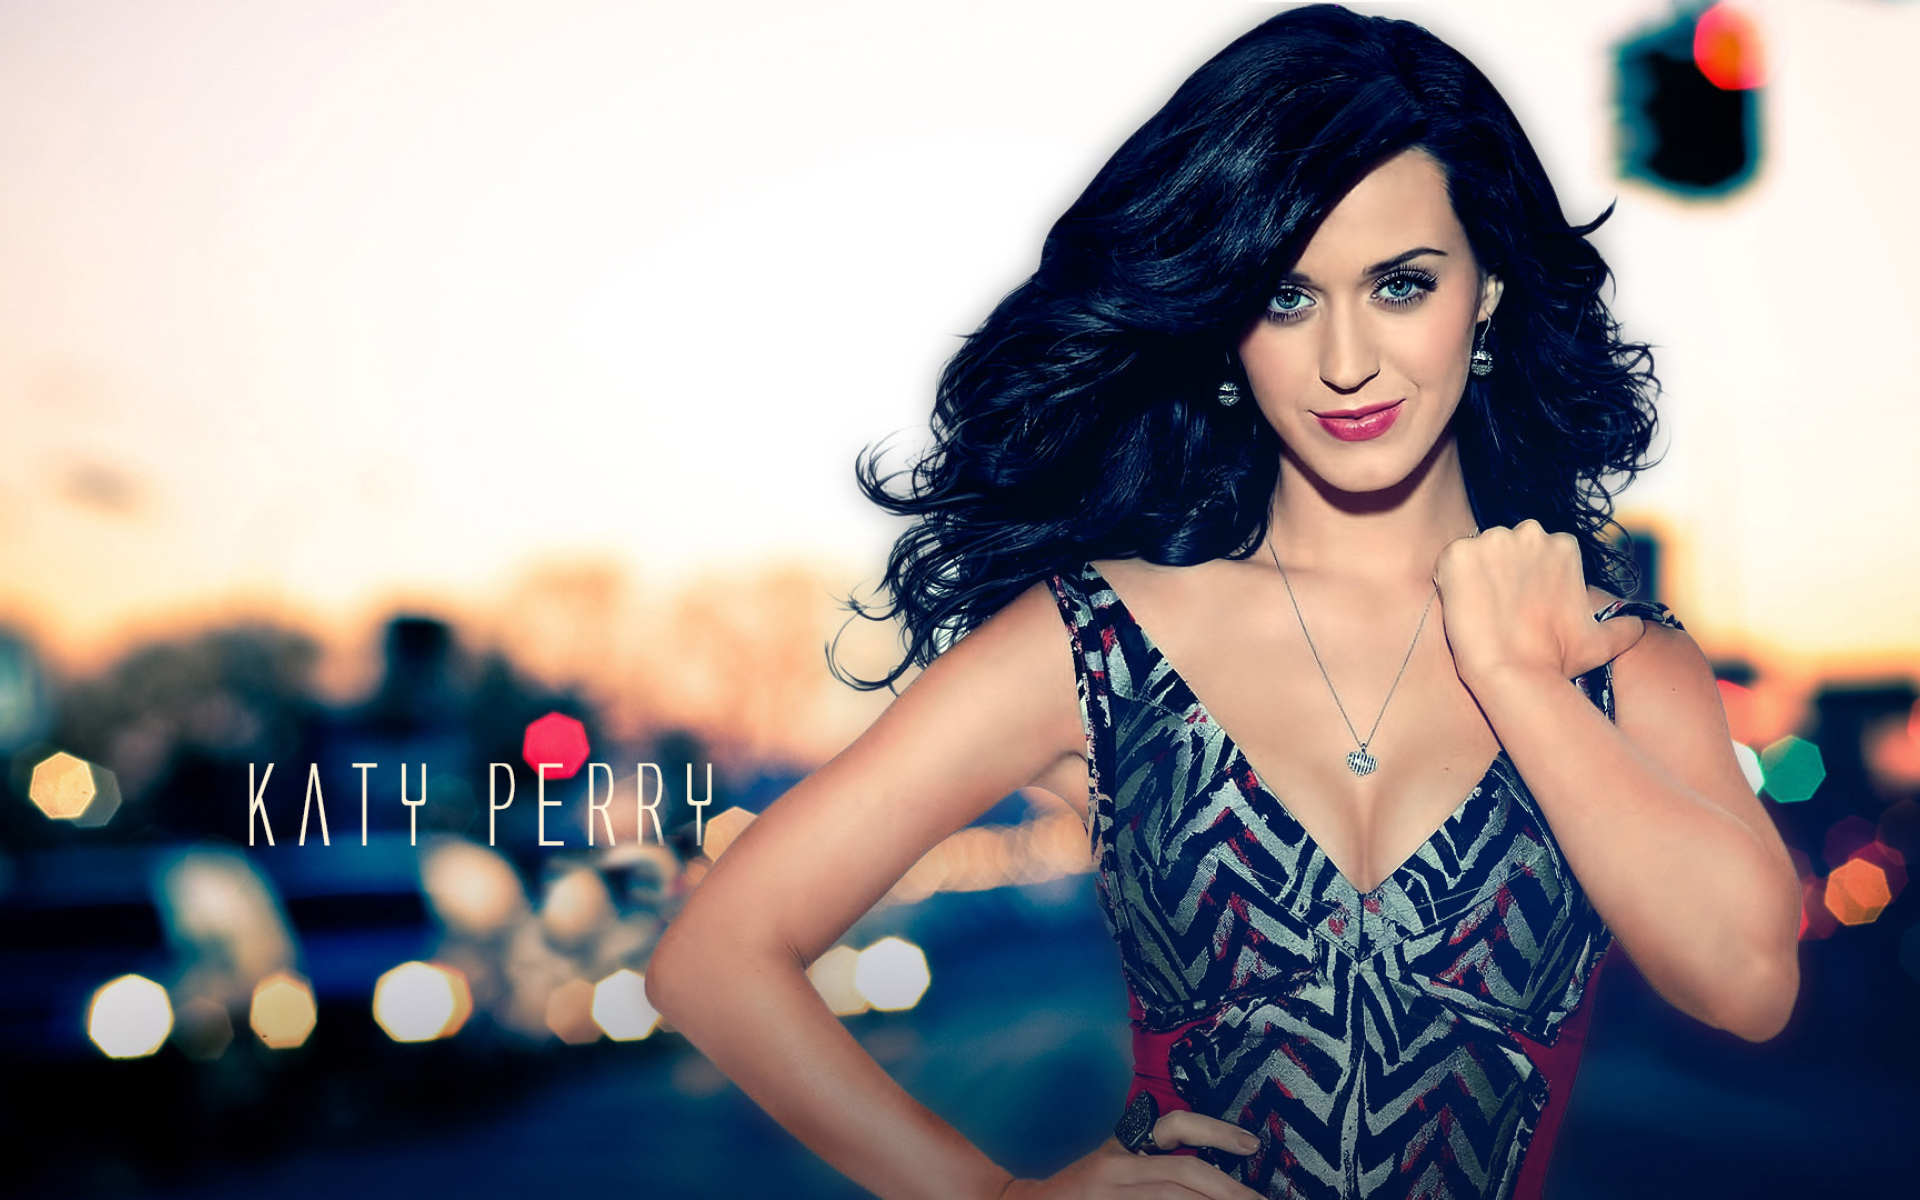 Katy Perry Sexy Smile Photoshoot, Full Hd Wallpaper-5012